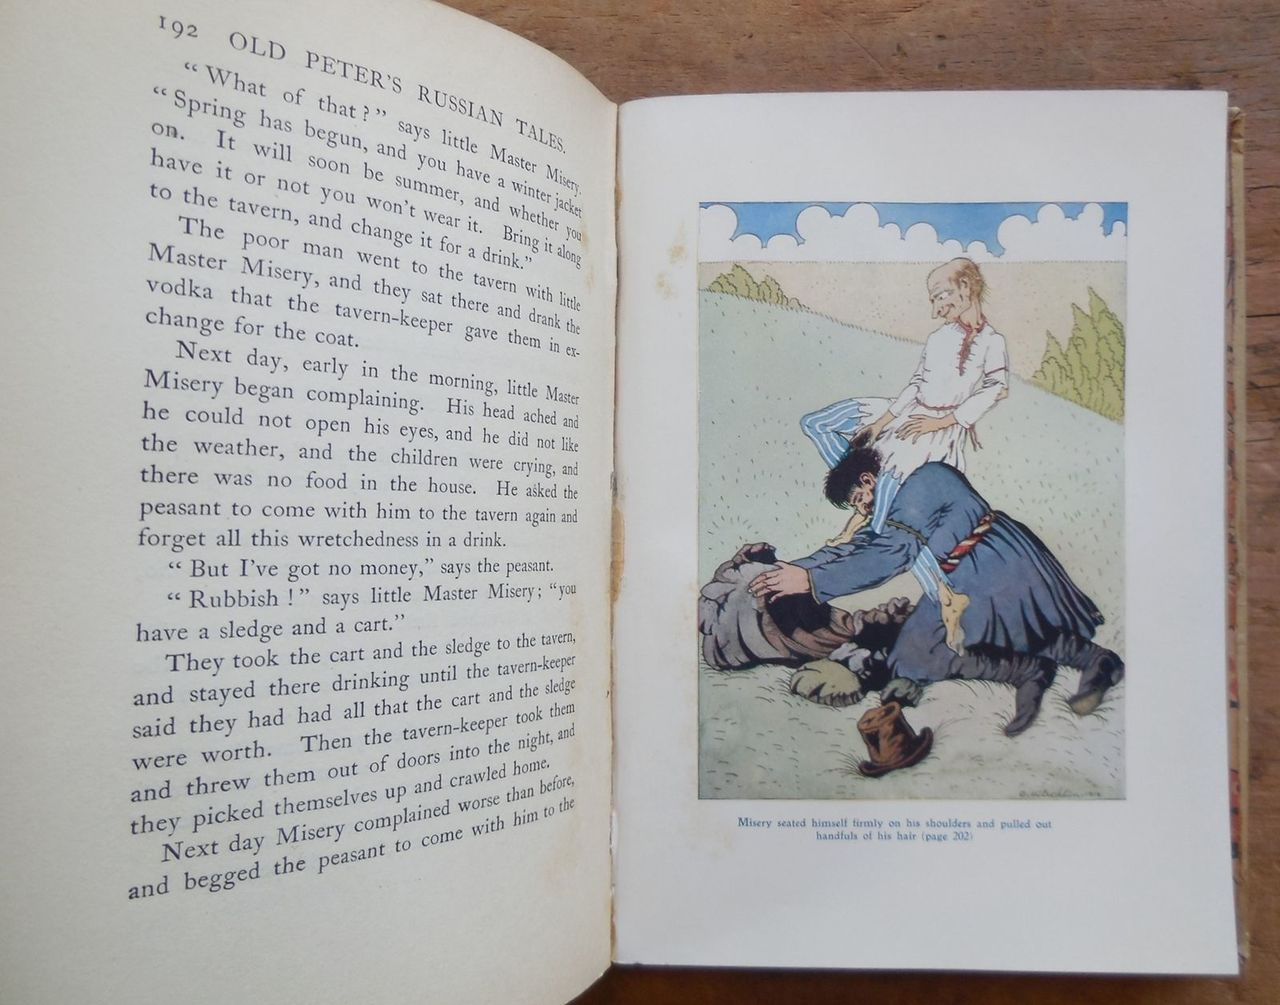 OLD PETER'S RUSSIAN TALES, by Arthur Ransome, illus. by Dmitry Mitrohin - 1918 [1st US Ed]